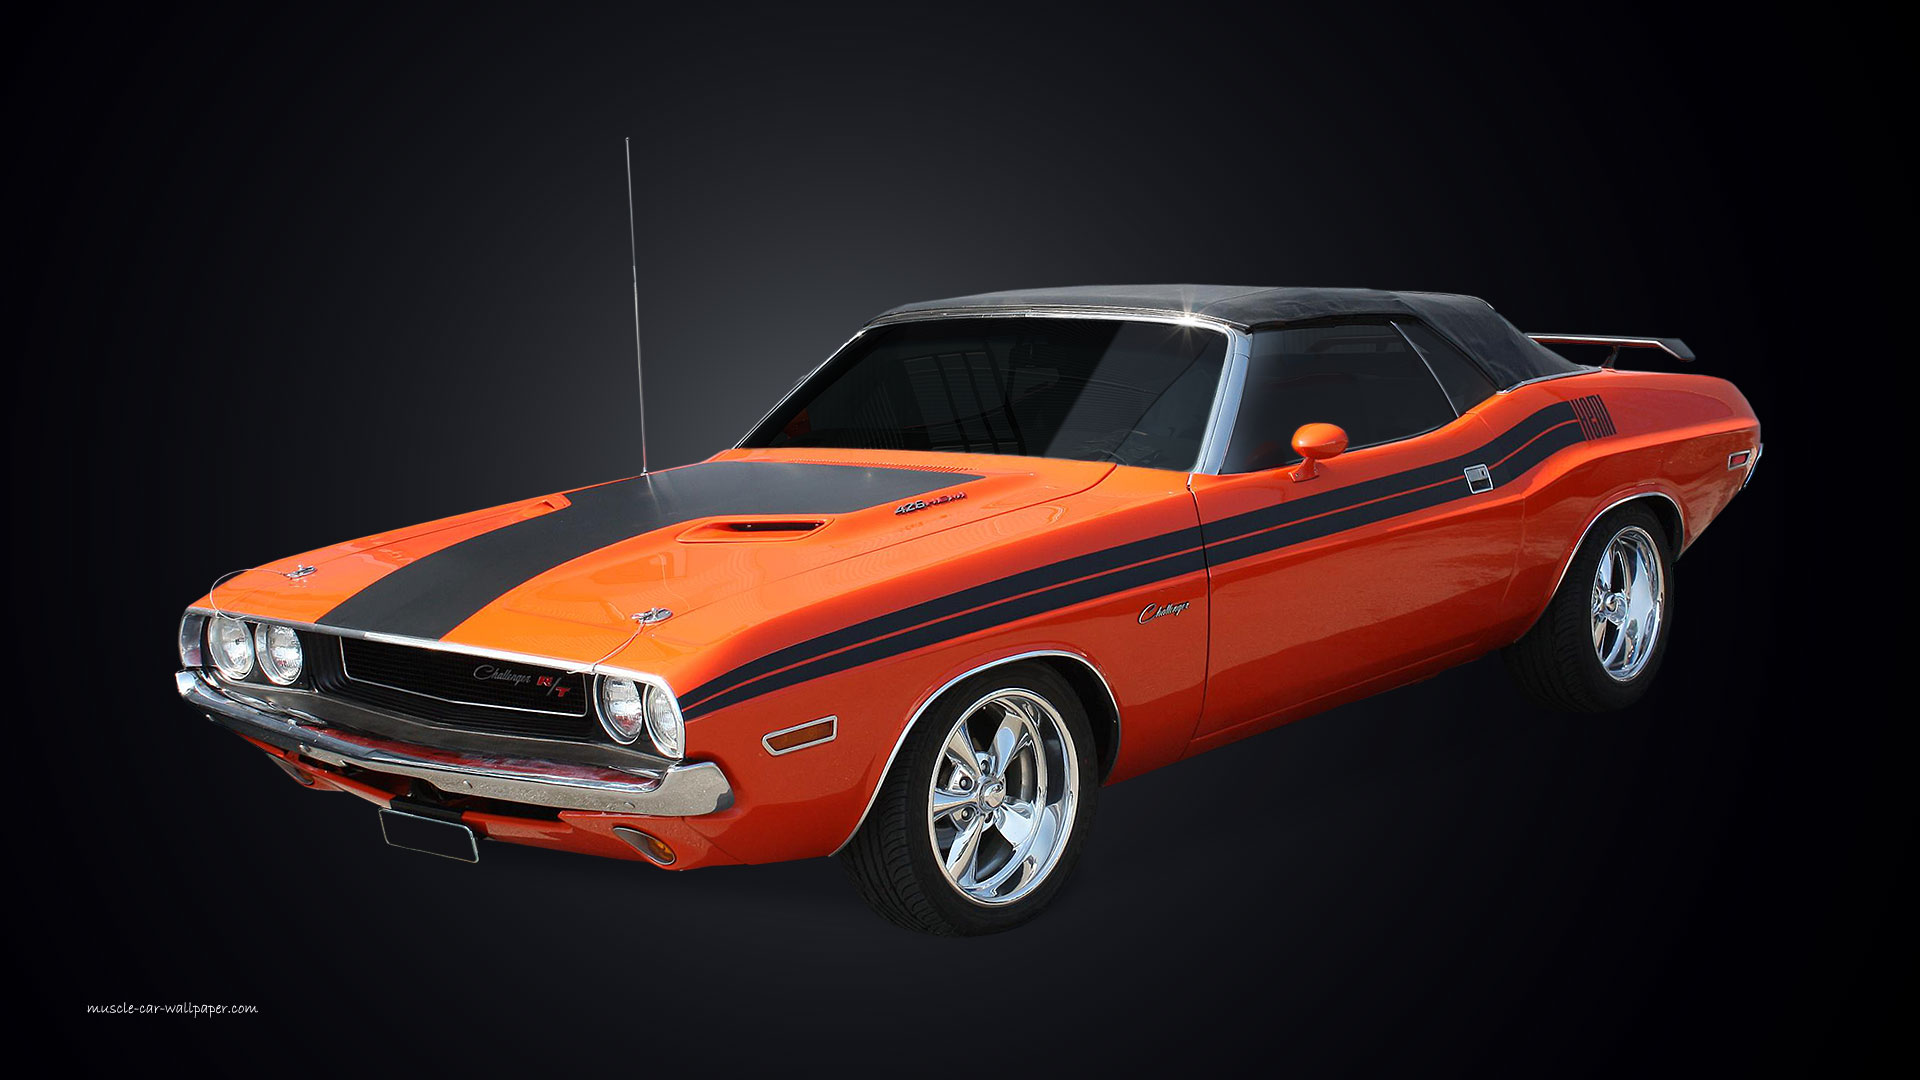 1970 Dodge Challenger RT Wallpaper 1920x1080 1920x1080